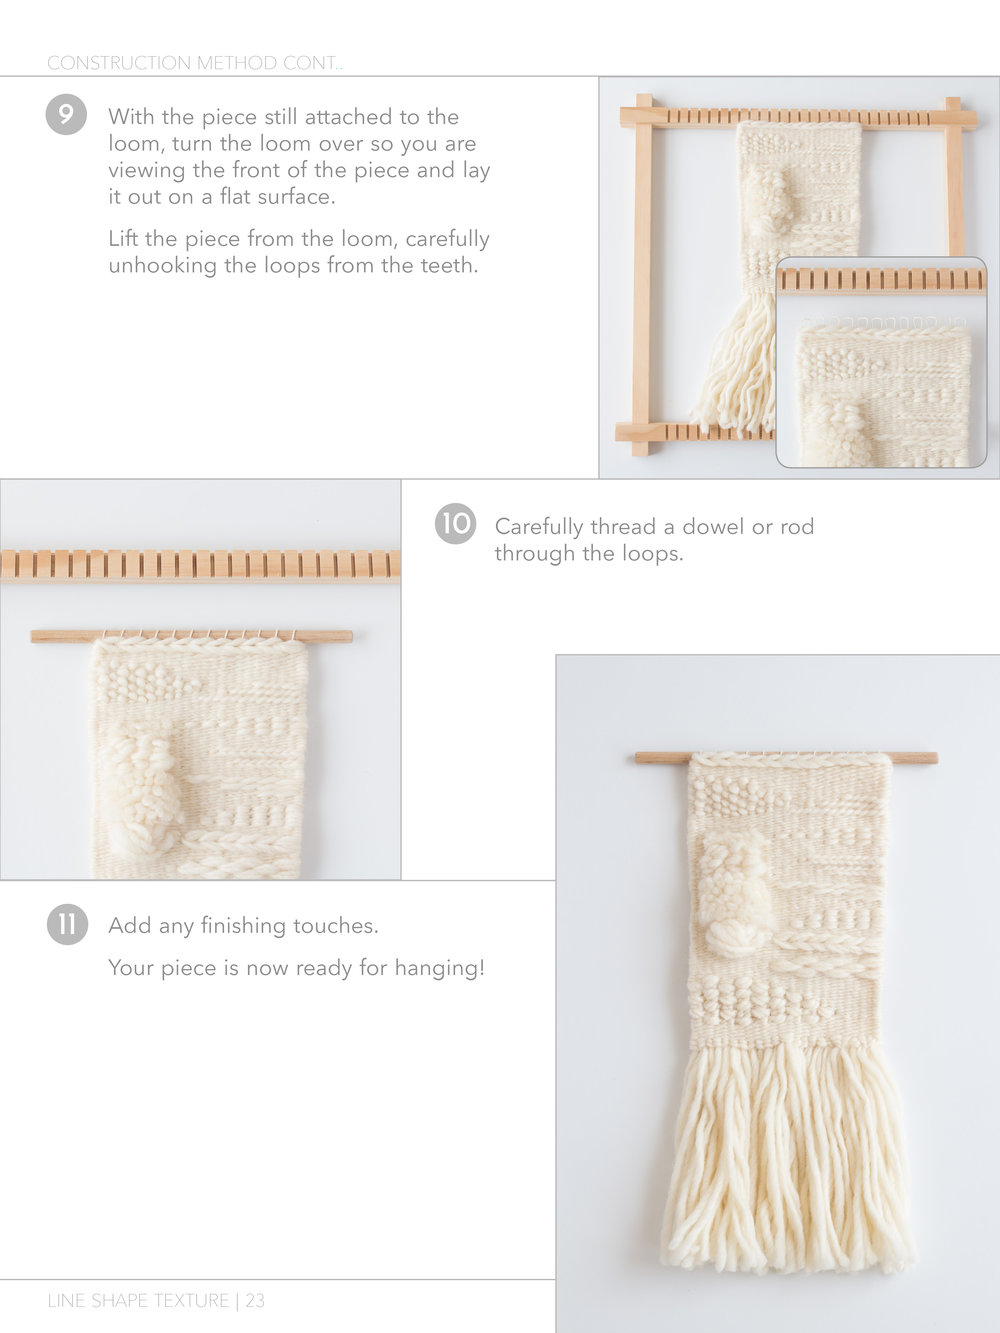 LINE SHAPE TEXTURE A Creative's Guide to Frame-Loom Weaving 6.jpg